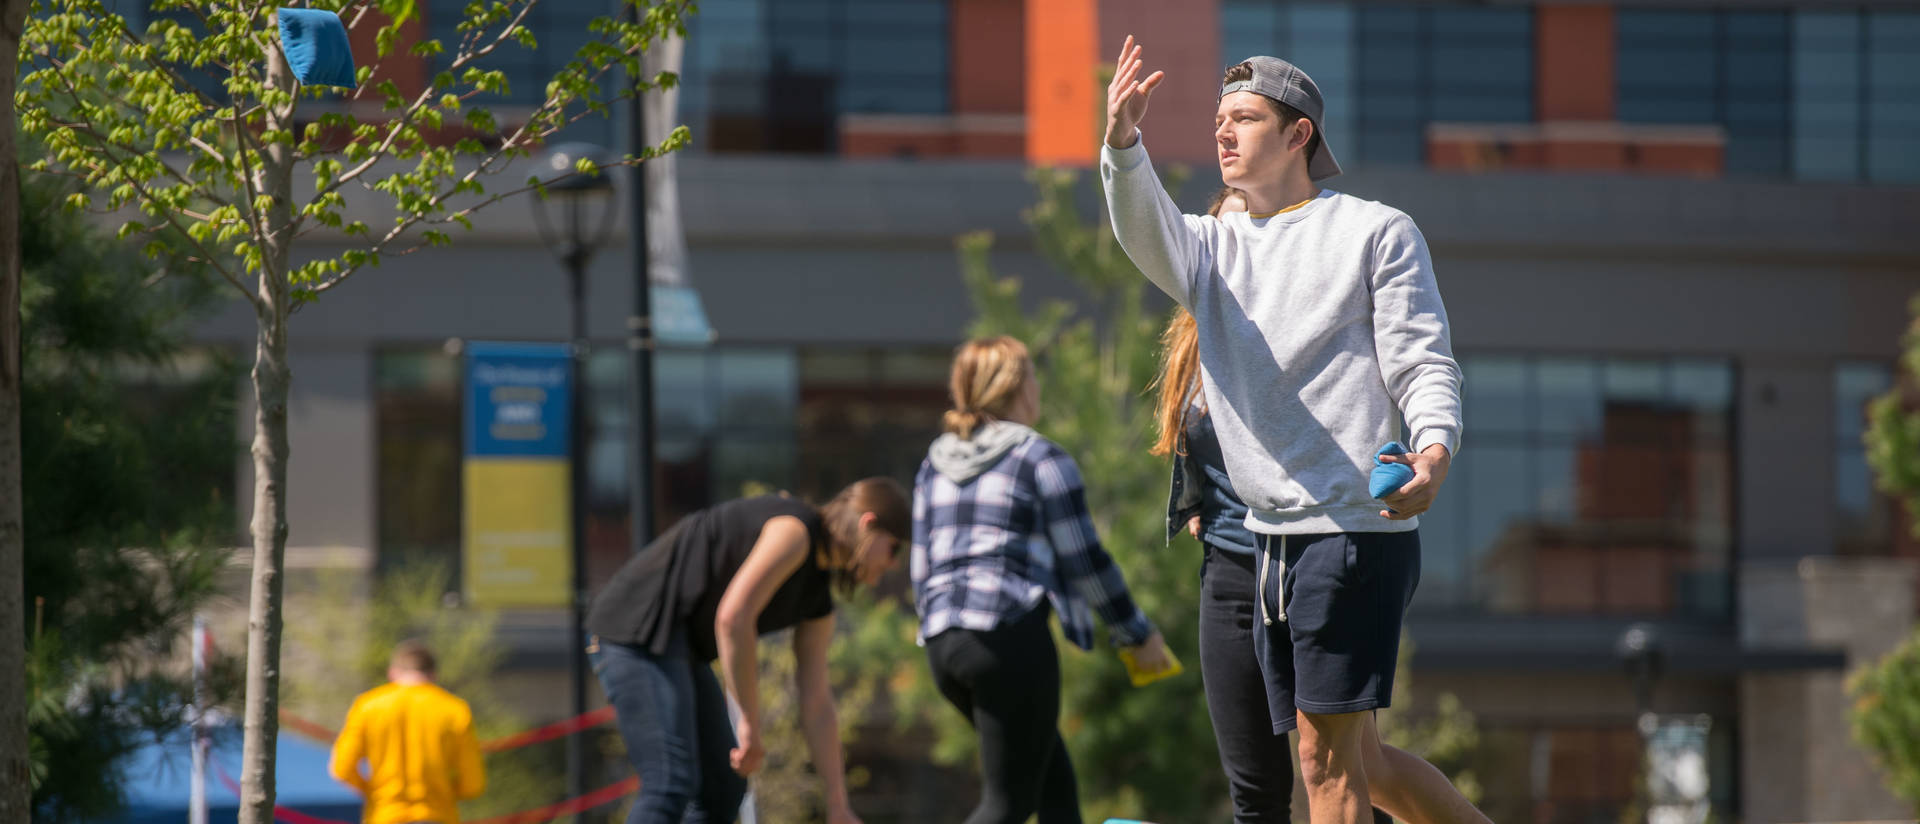 Male student tossing bags for bean bag game on campus mall, spring